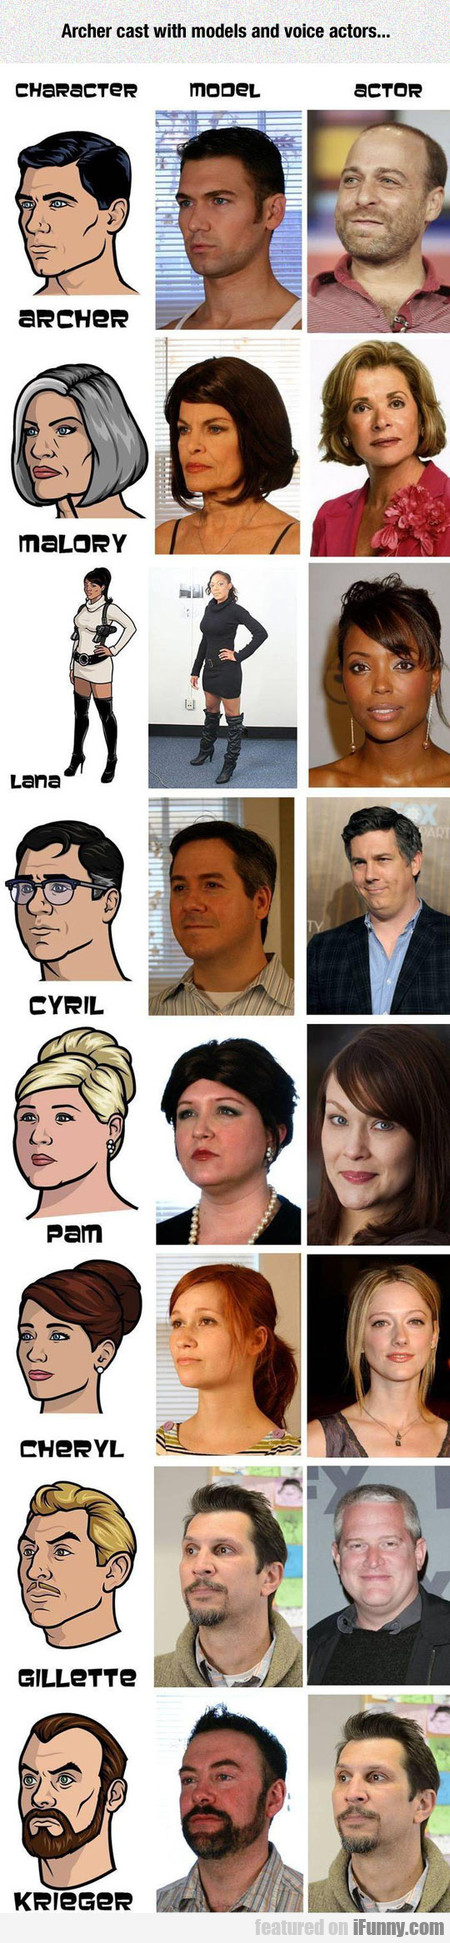 Archer Cast With Models And Voice Actors...